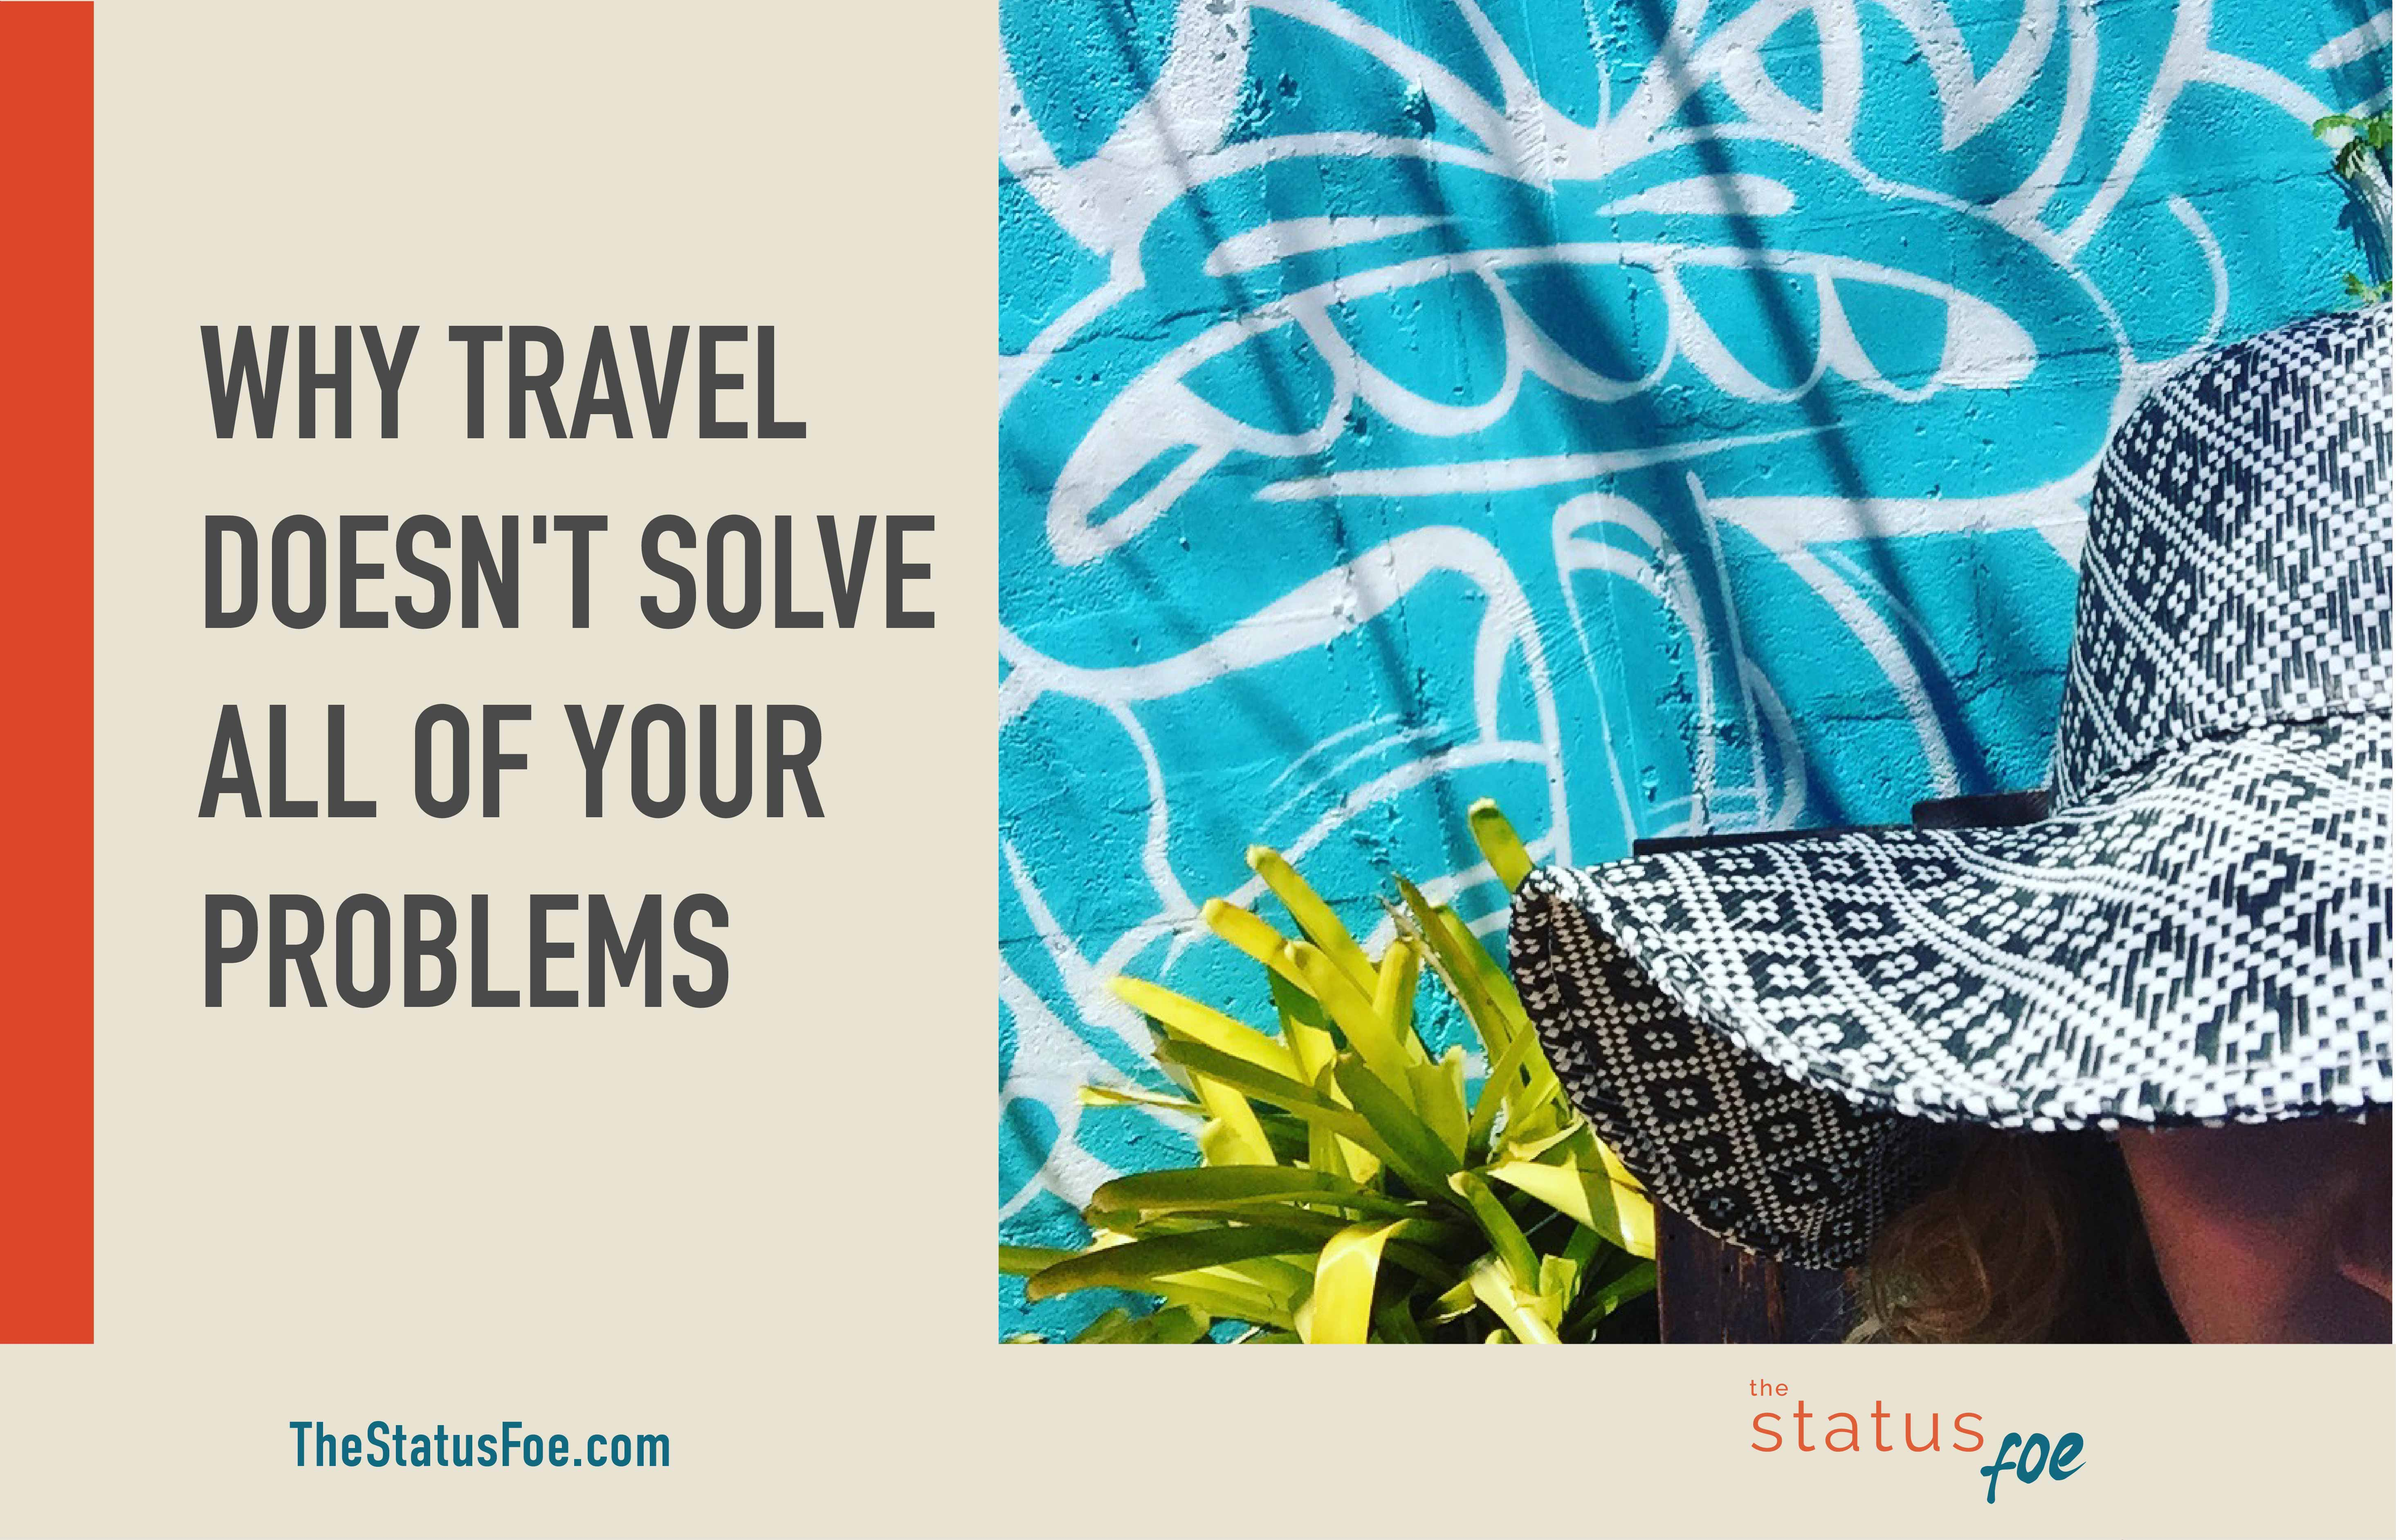 Why travel doesn't solve all of your problems